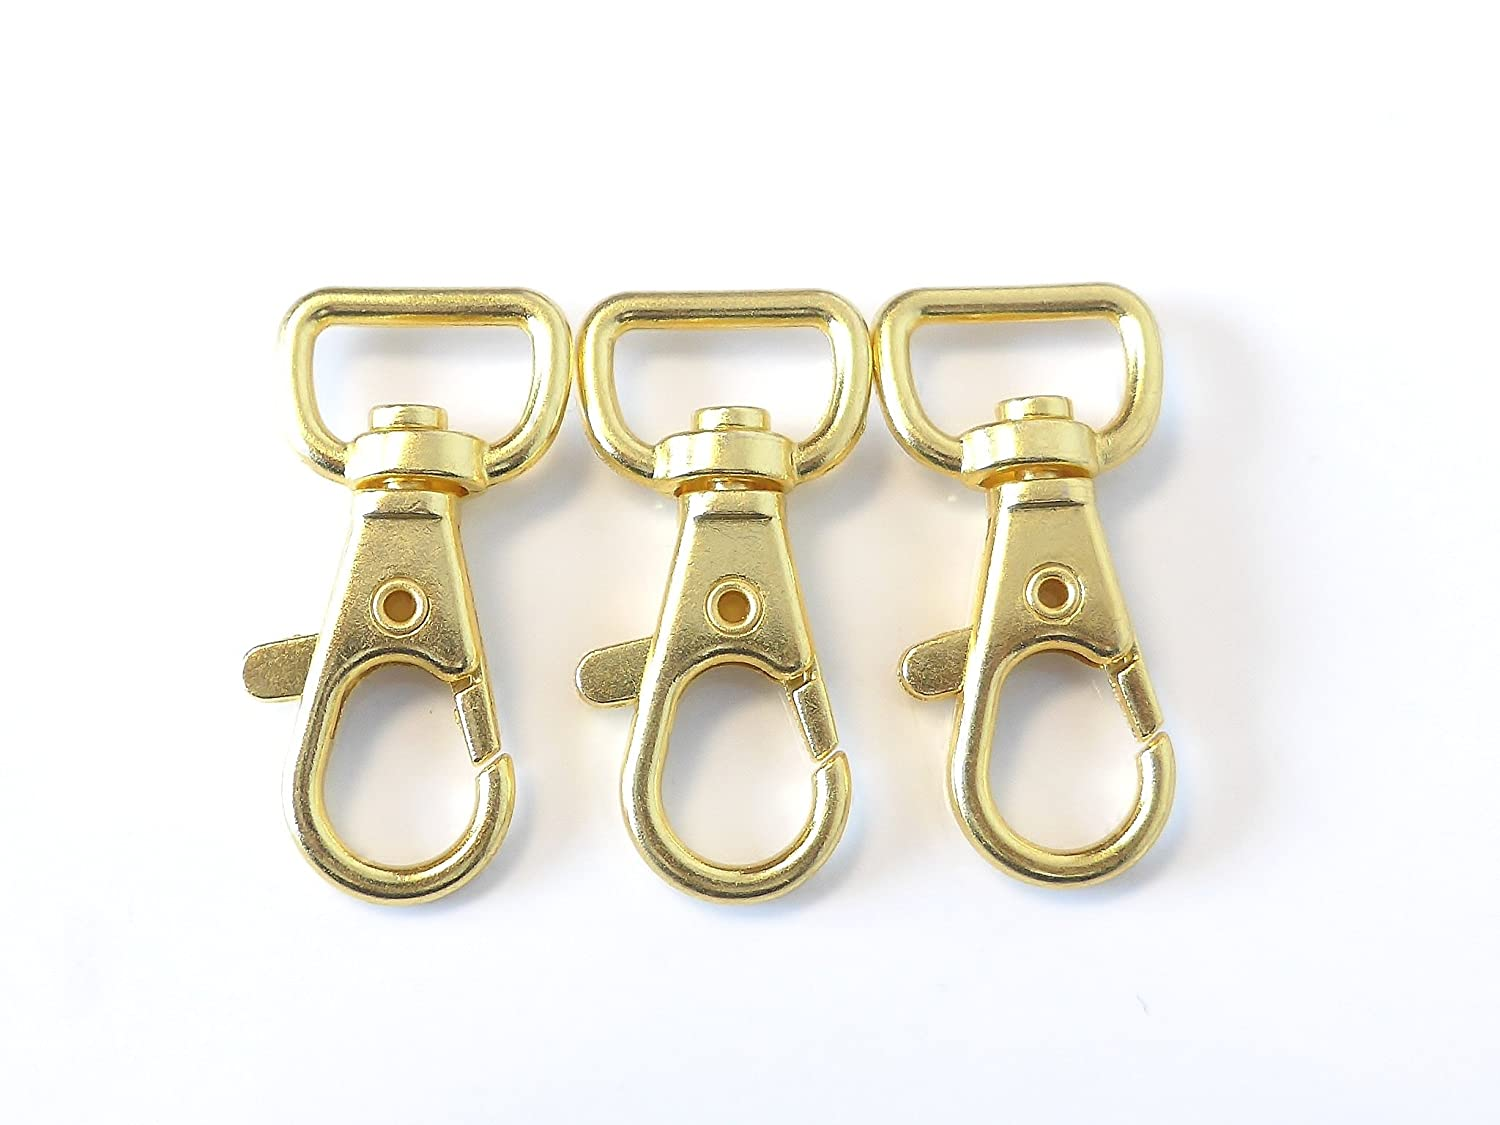 Gold Plated Swivel Clasps Lanyard Snap Hook Lobster Claw Clasp 1 1/2 x 3/4 inch Pack of 50